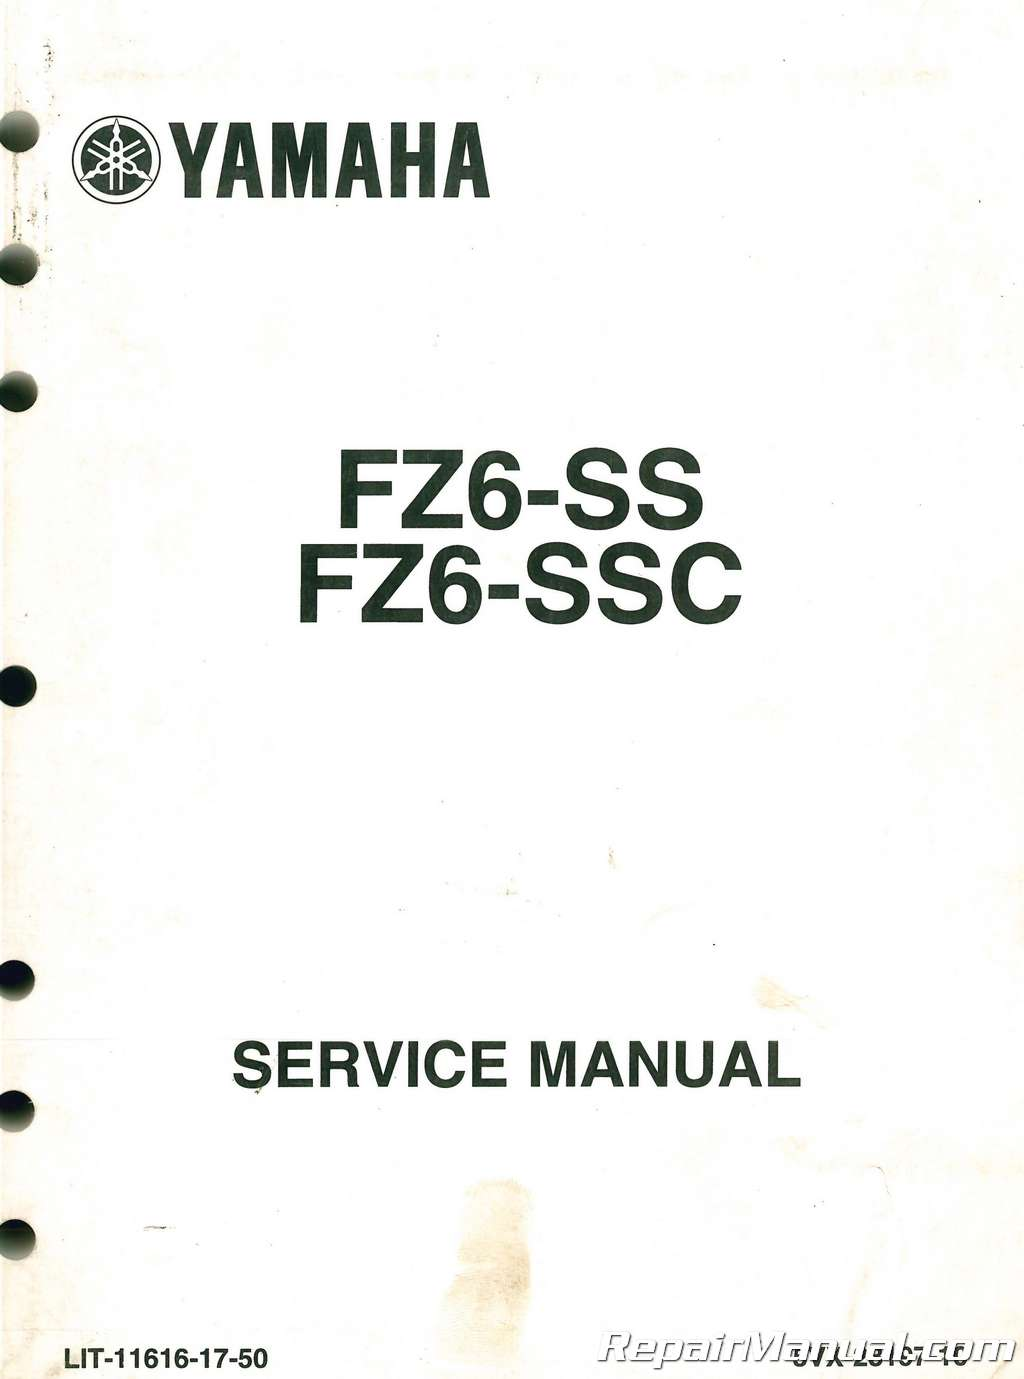 Used Yamaha Fz6 Motorcycle Service Manual